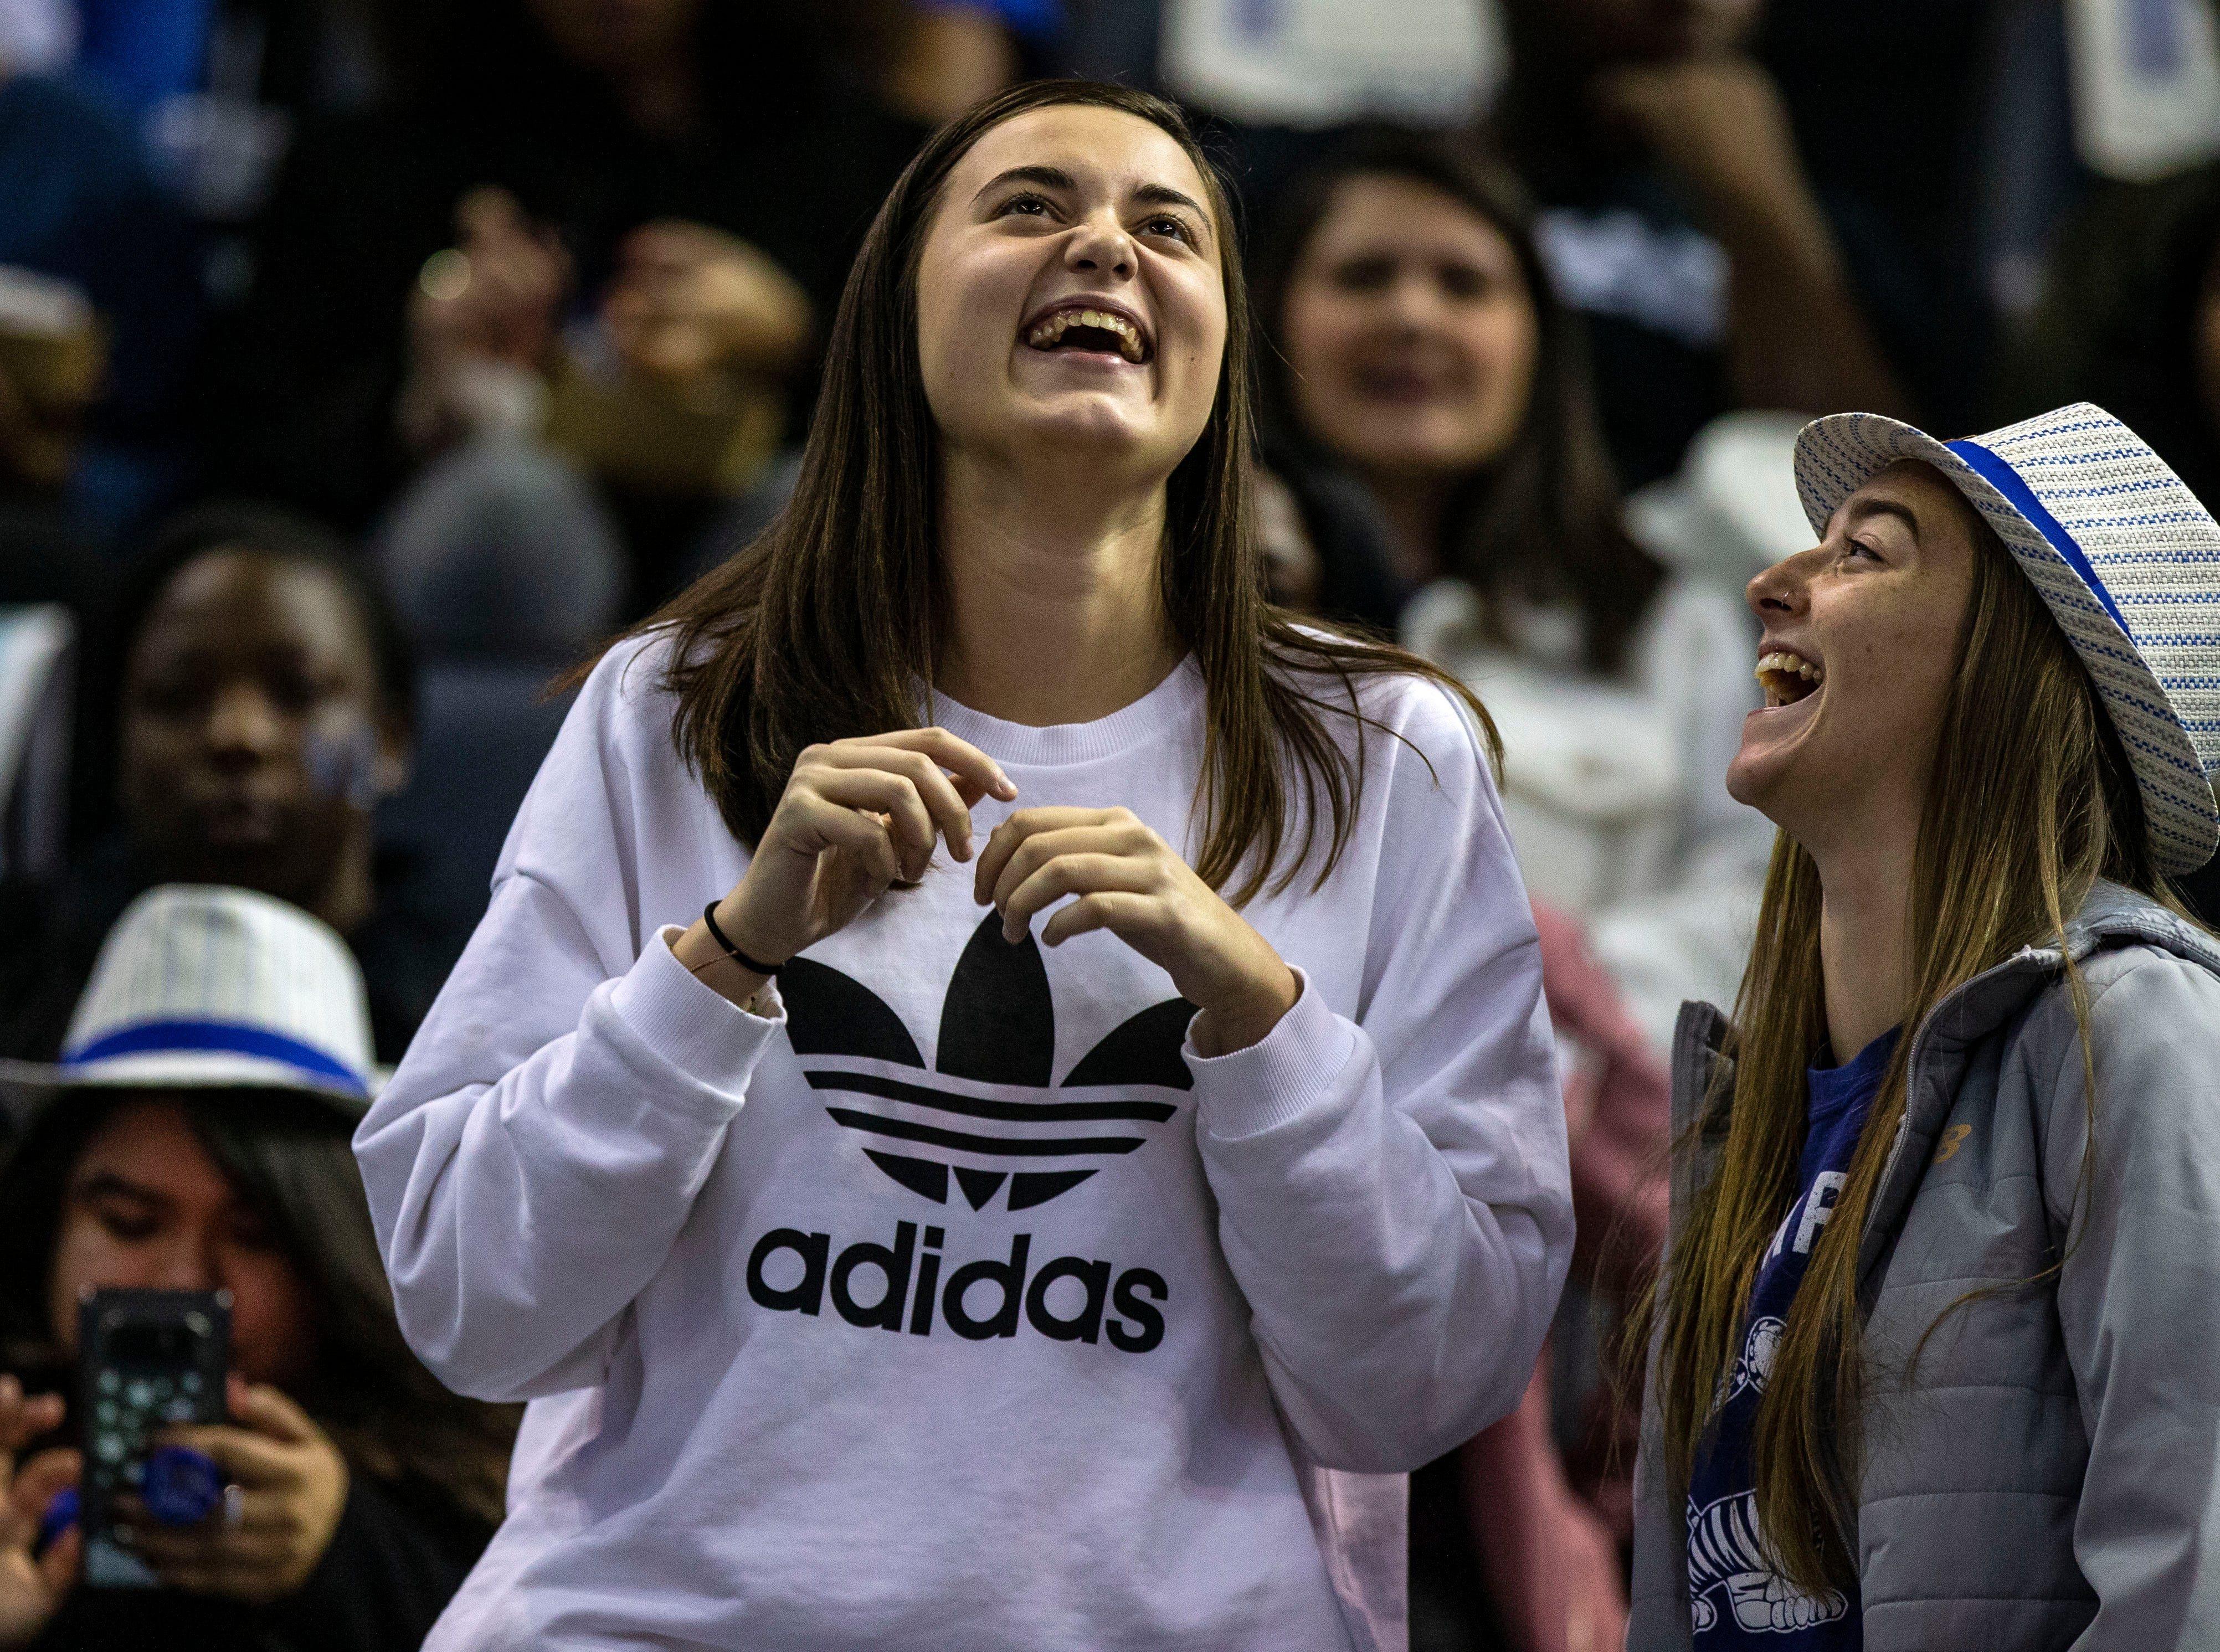 Memphis Tigers fans cheer in the stands during a basketball game between the Memphis Tigers and the South Dakota State Jackrabbits in the Fedex Forum, Tuesday, Dec. 4, 2018.